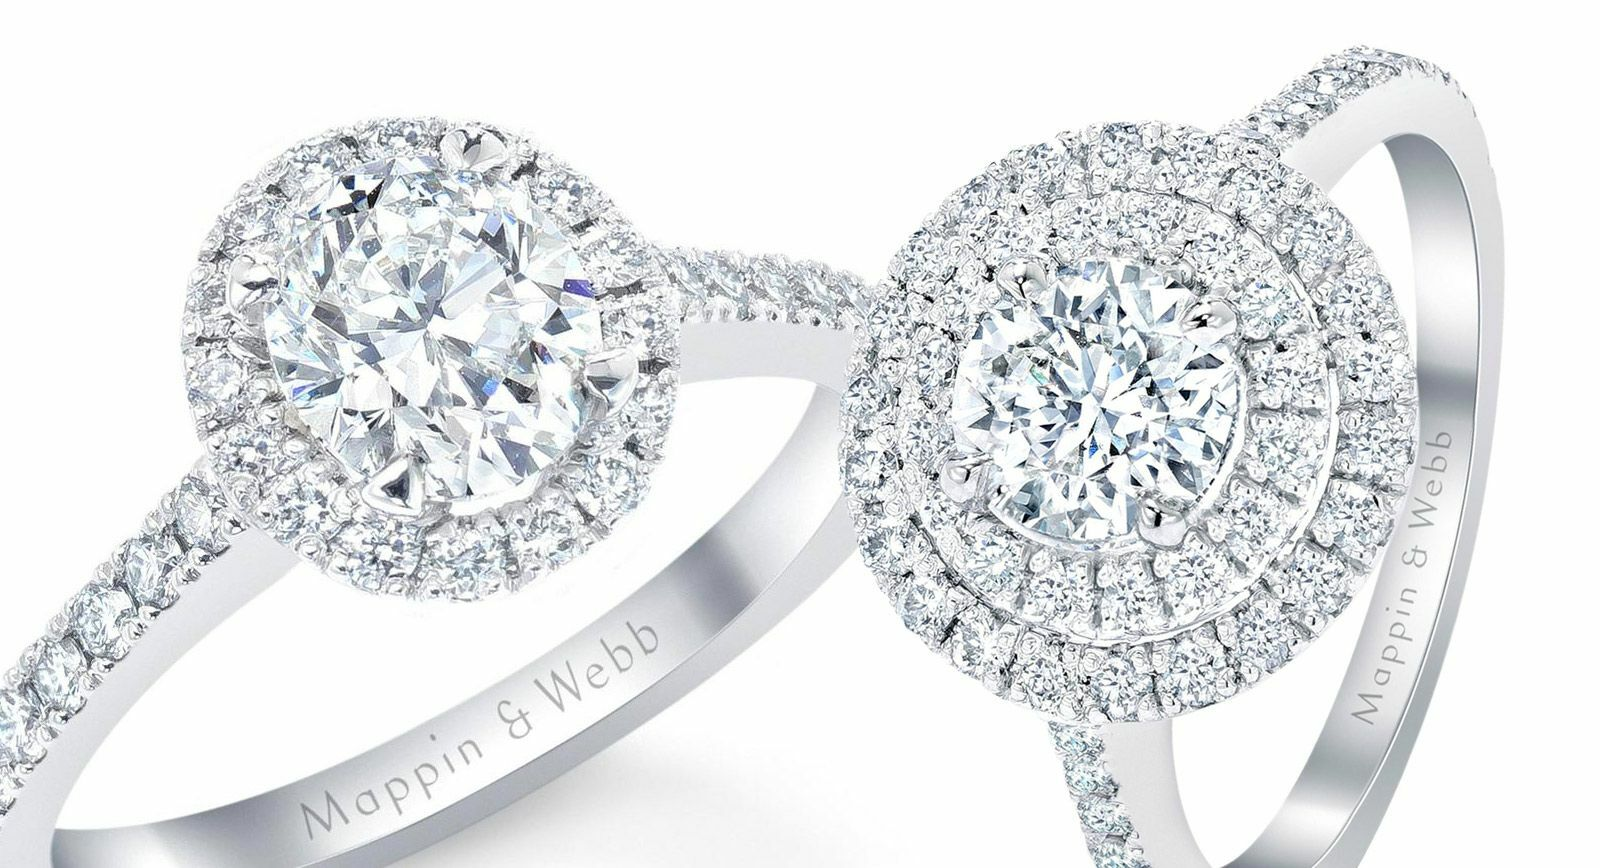 Mappin&Webb By Appointment Service: An Engagement Ring Of Your Dreams